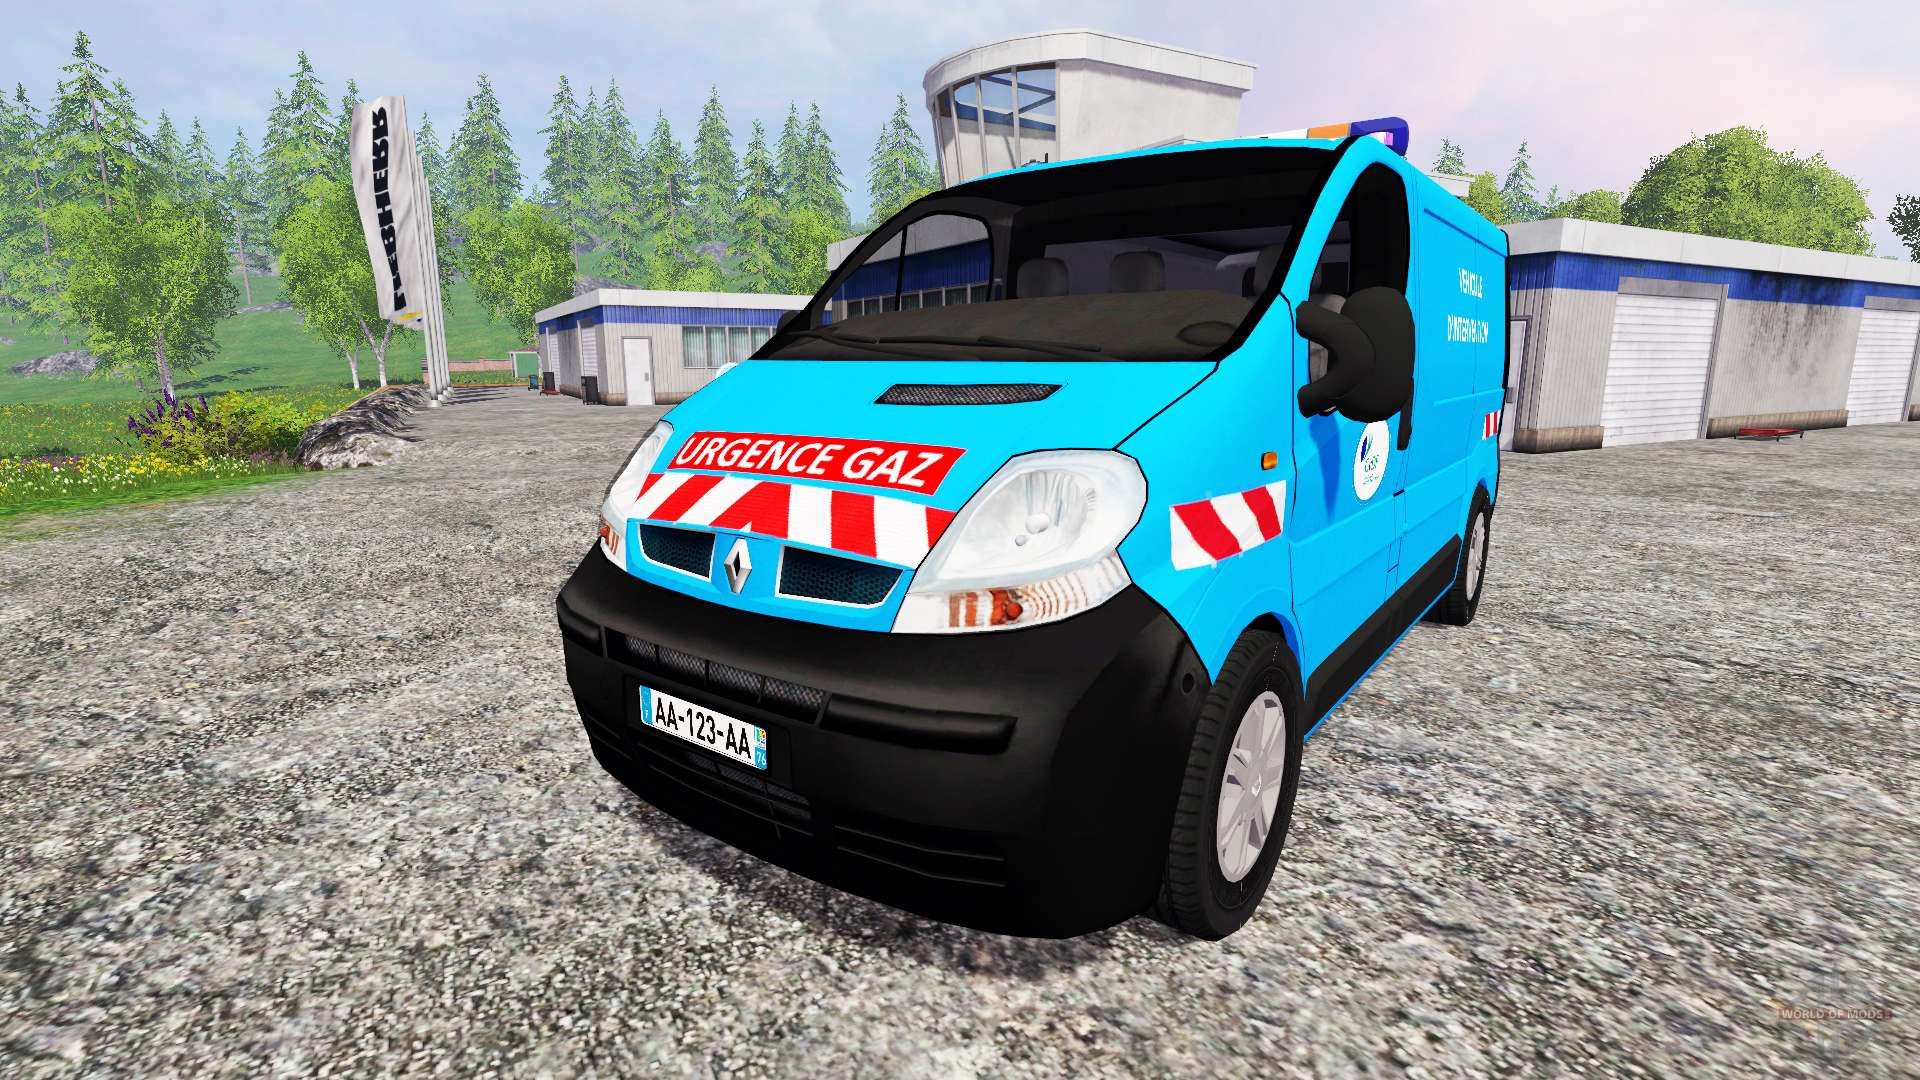 renault trafic urgence gaz v2 0 for farming simulator 2015. Black Bedroom Furniture Sets. Home Design Ideas